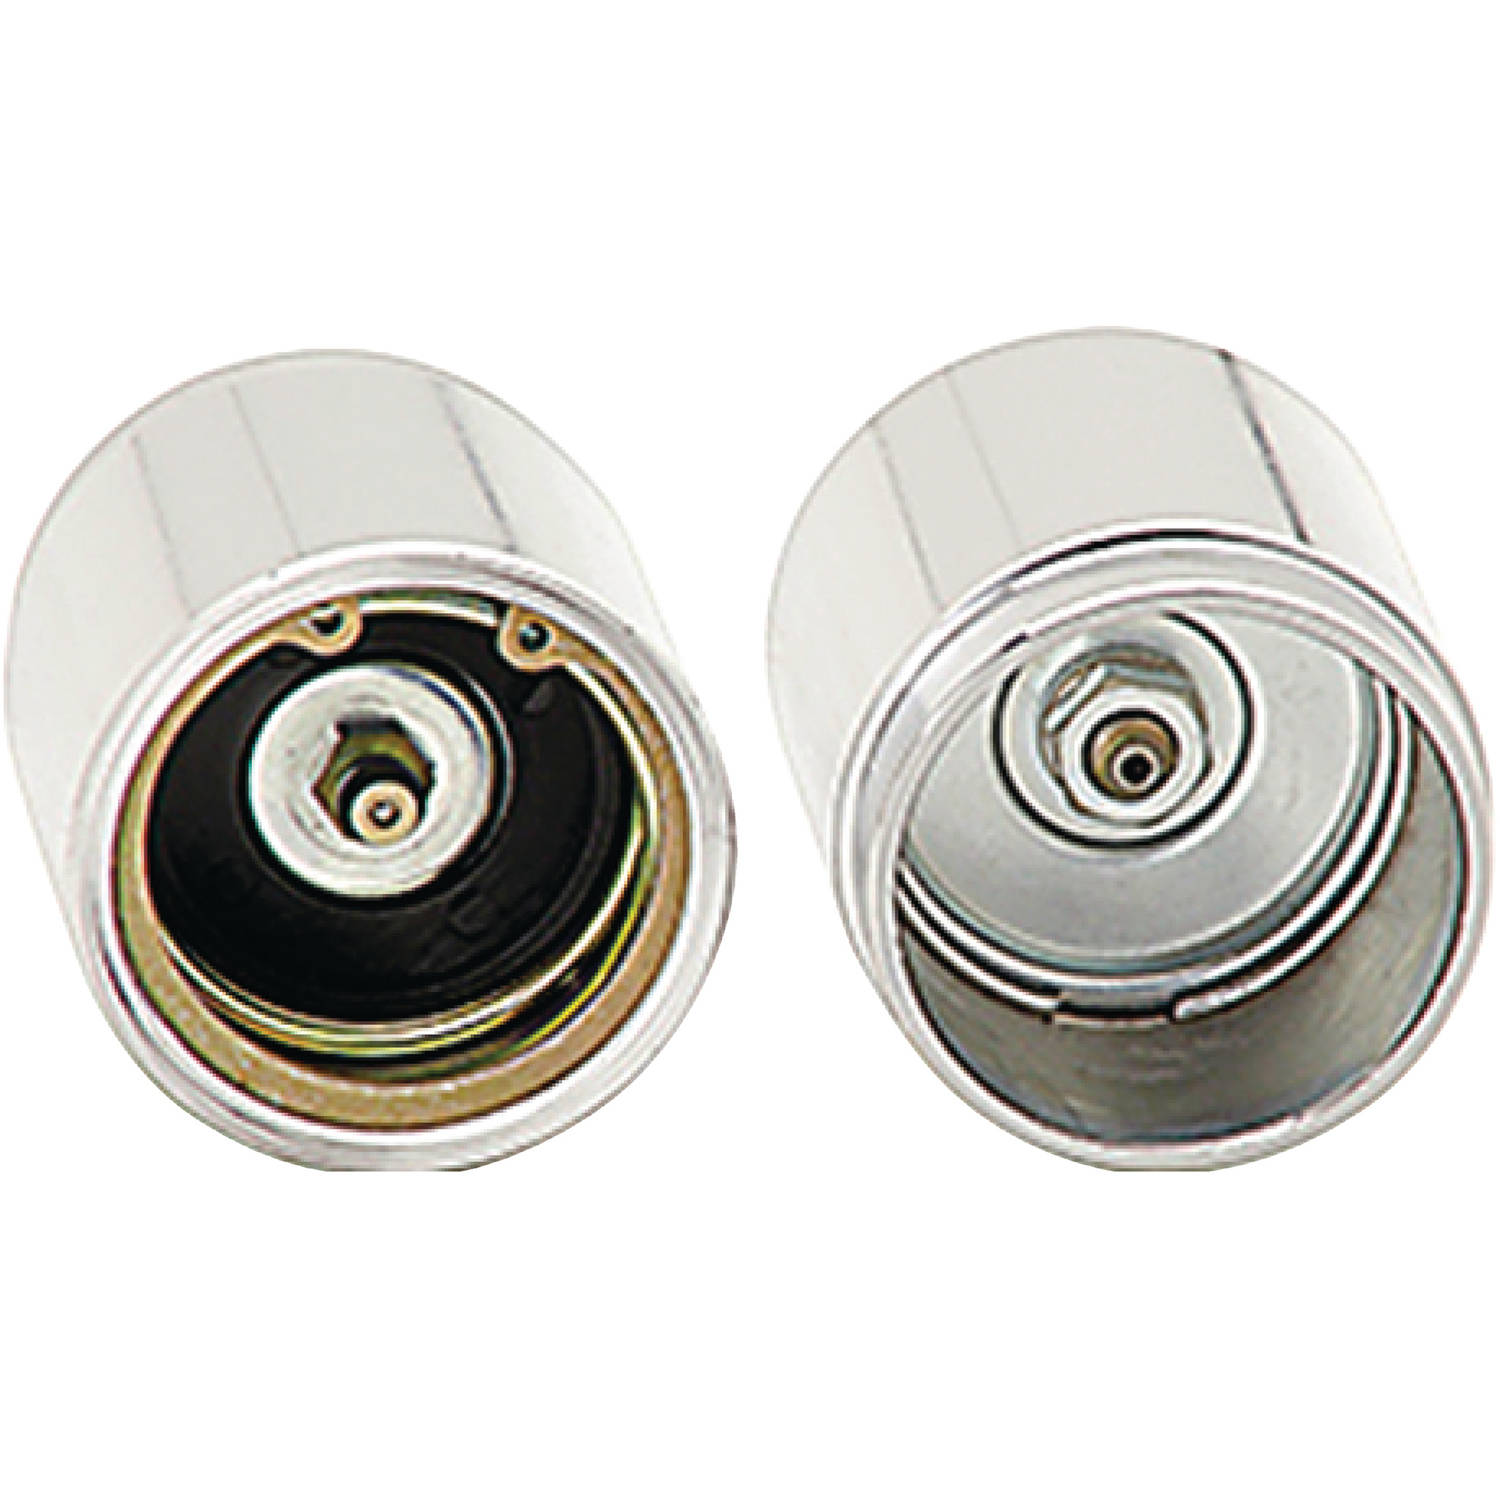 Fulton Wheel Bearing Protectors with Covers - 1 Pair